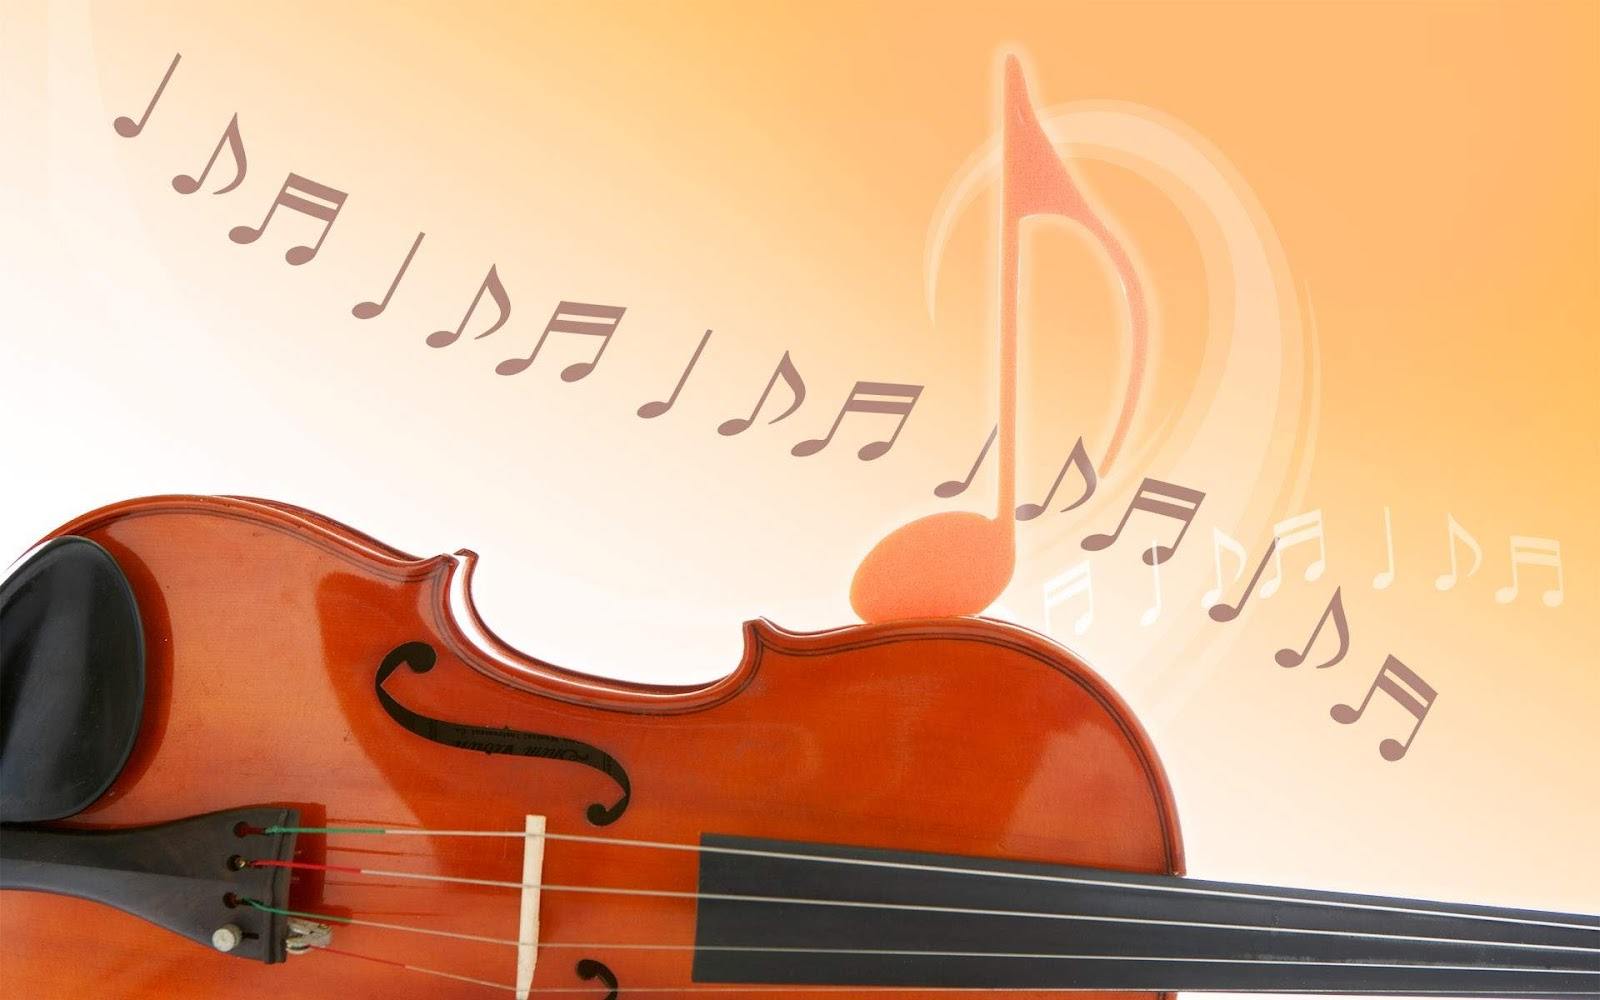 Violin with music notes wallpaper - Music Violins Collection